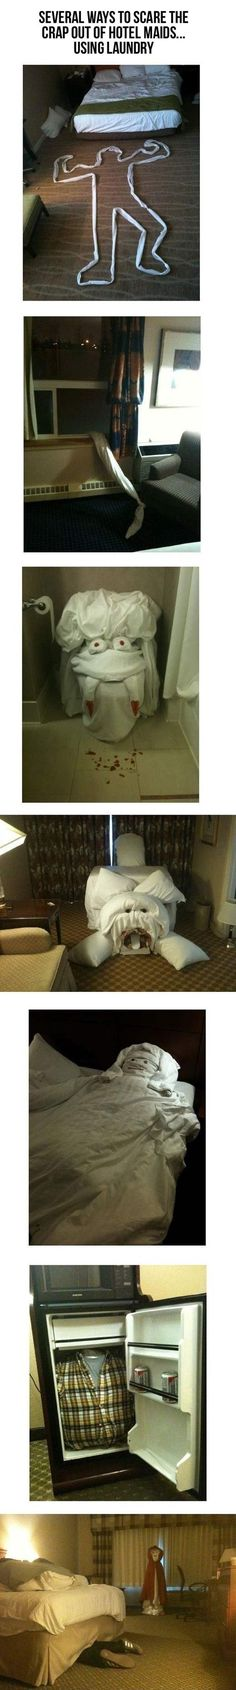 several ways to scare hotel maids.